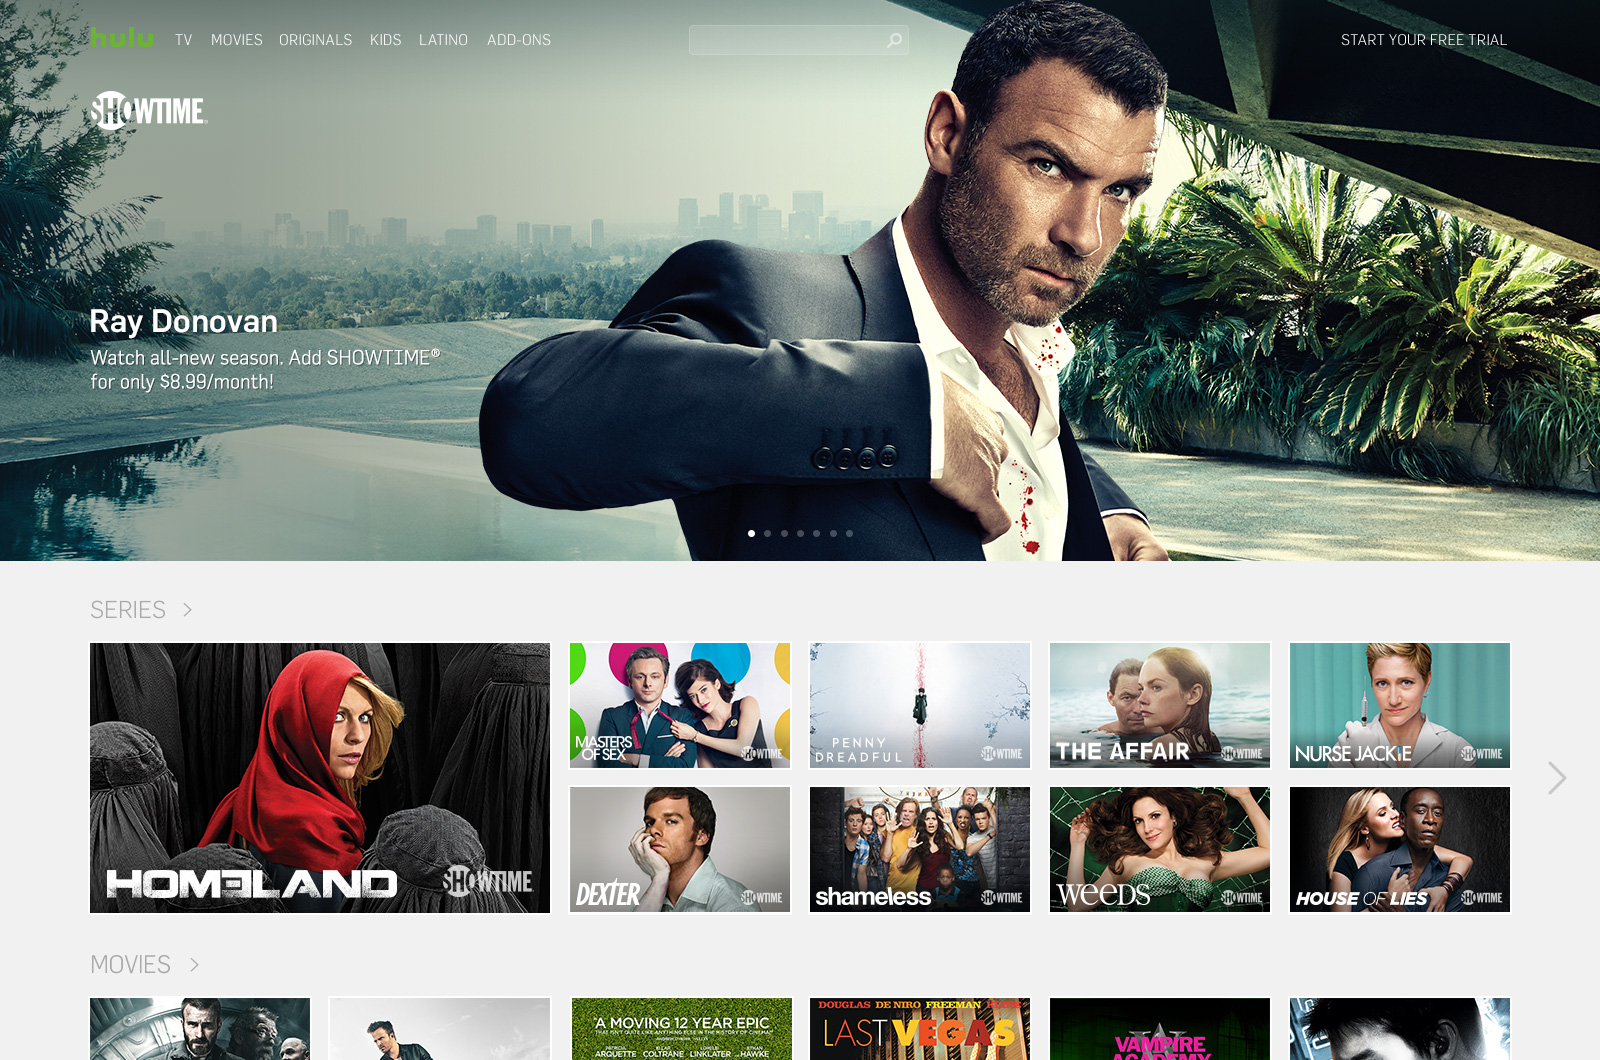 Hulu Will Sell Showtime's Standalone Streaming Service For $9